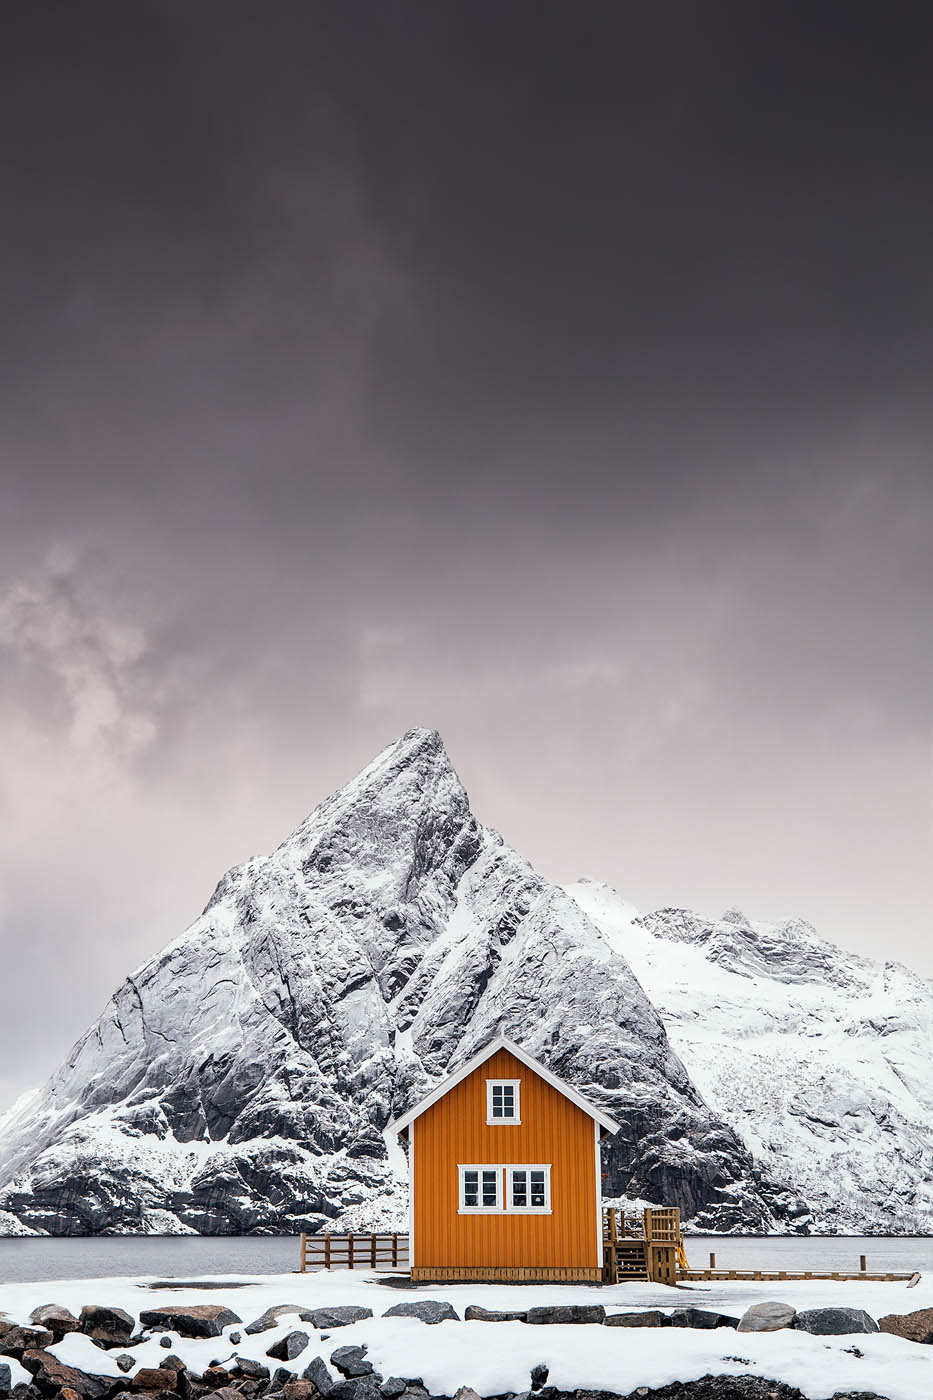 Shapes of Lofoten © Mikkel Beiter, Denmark, Winner, Open Competition Travel, 2018 Sony World Photography Awards